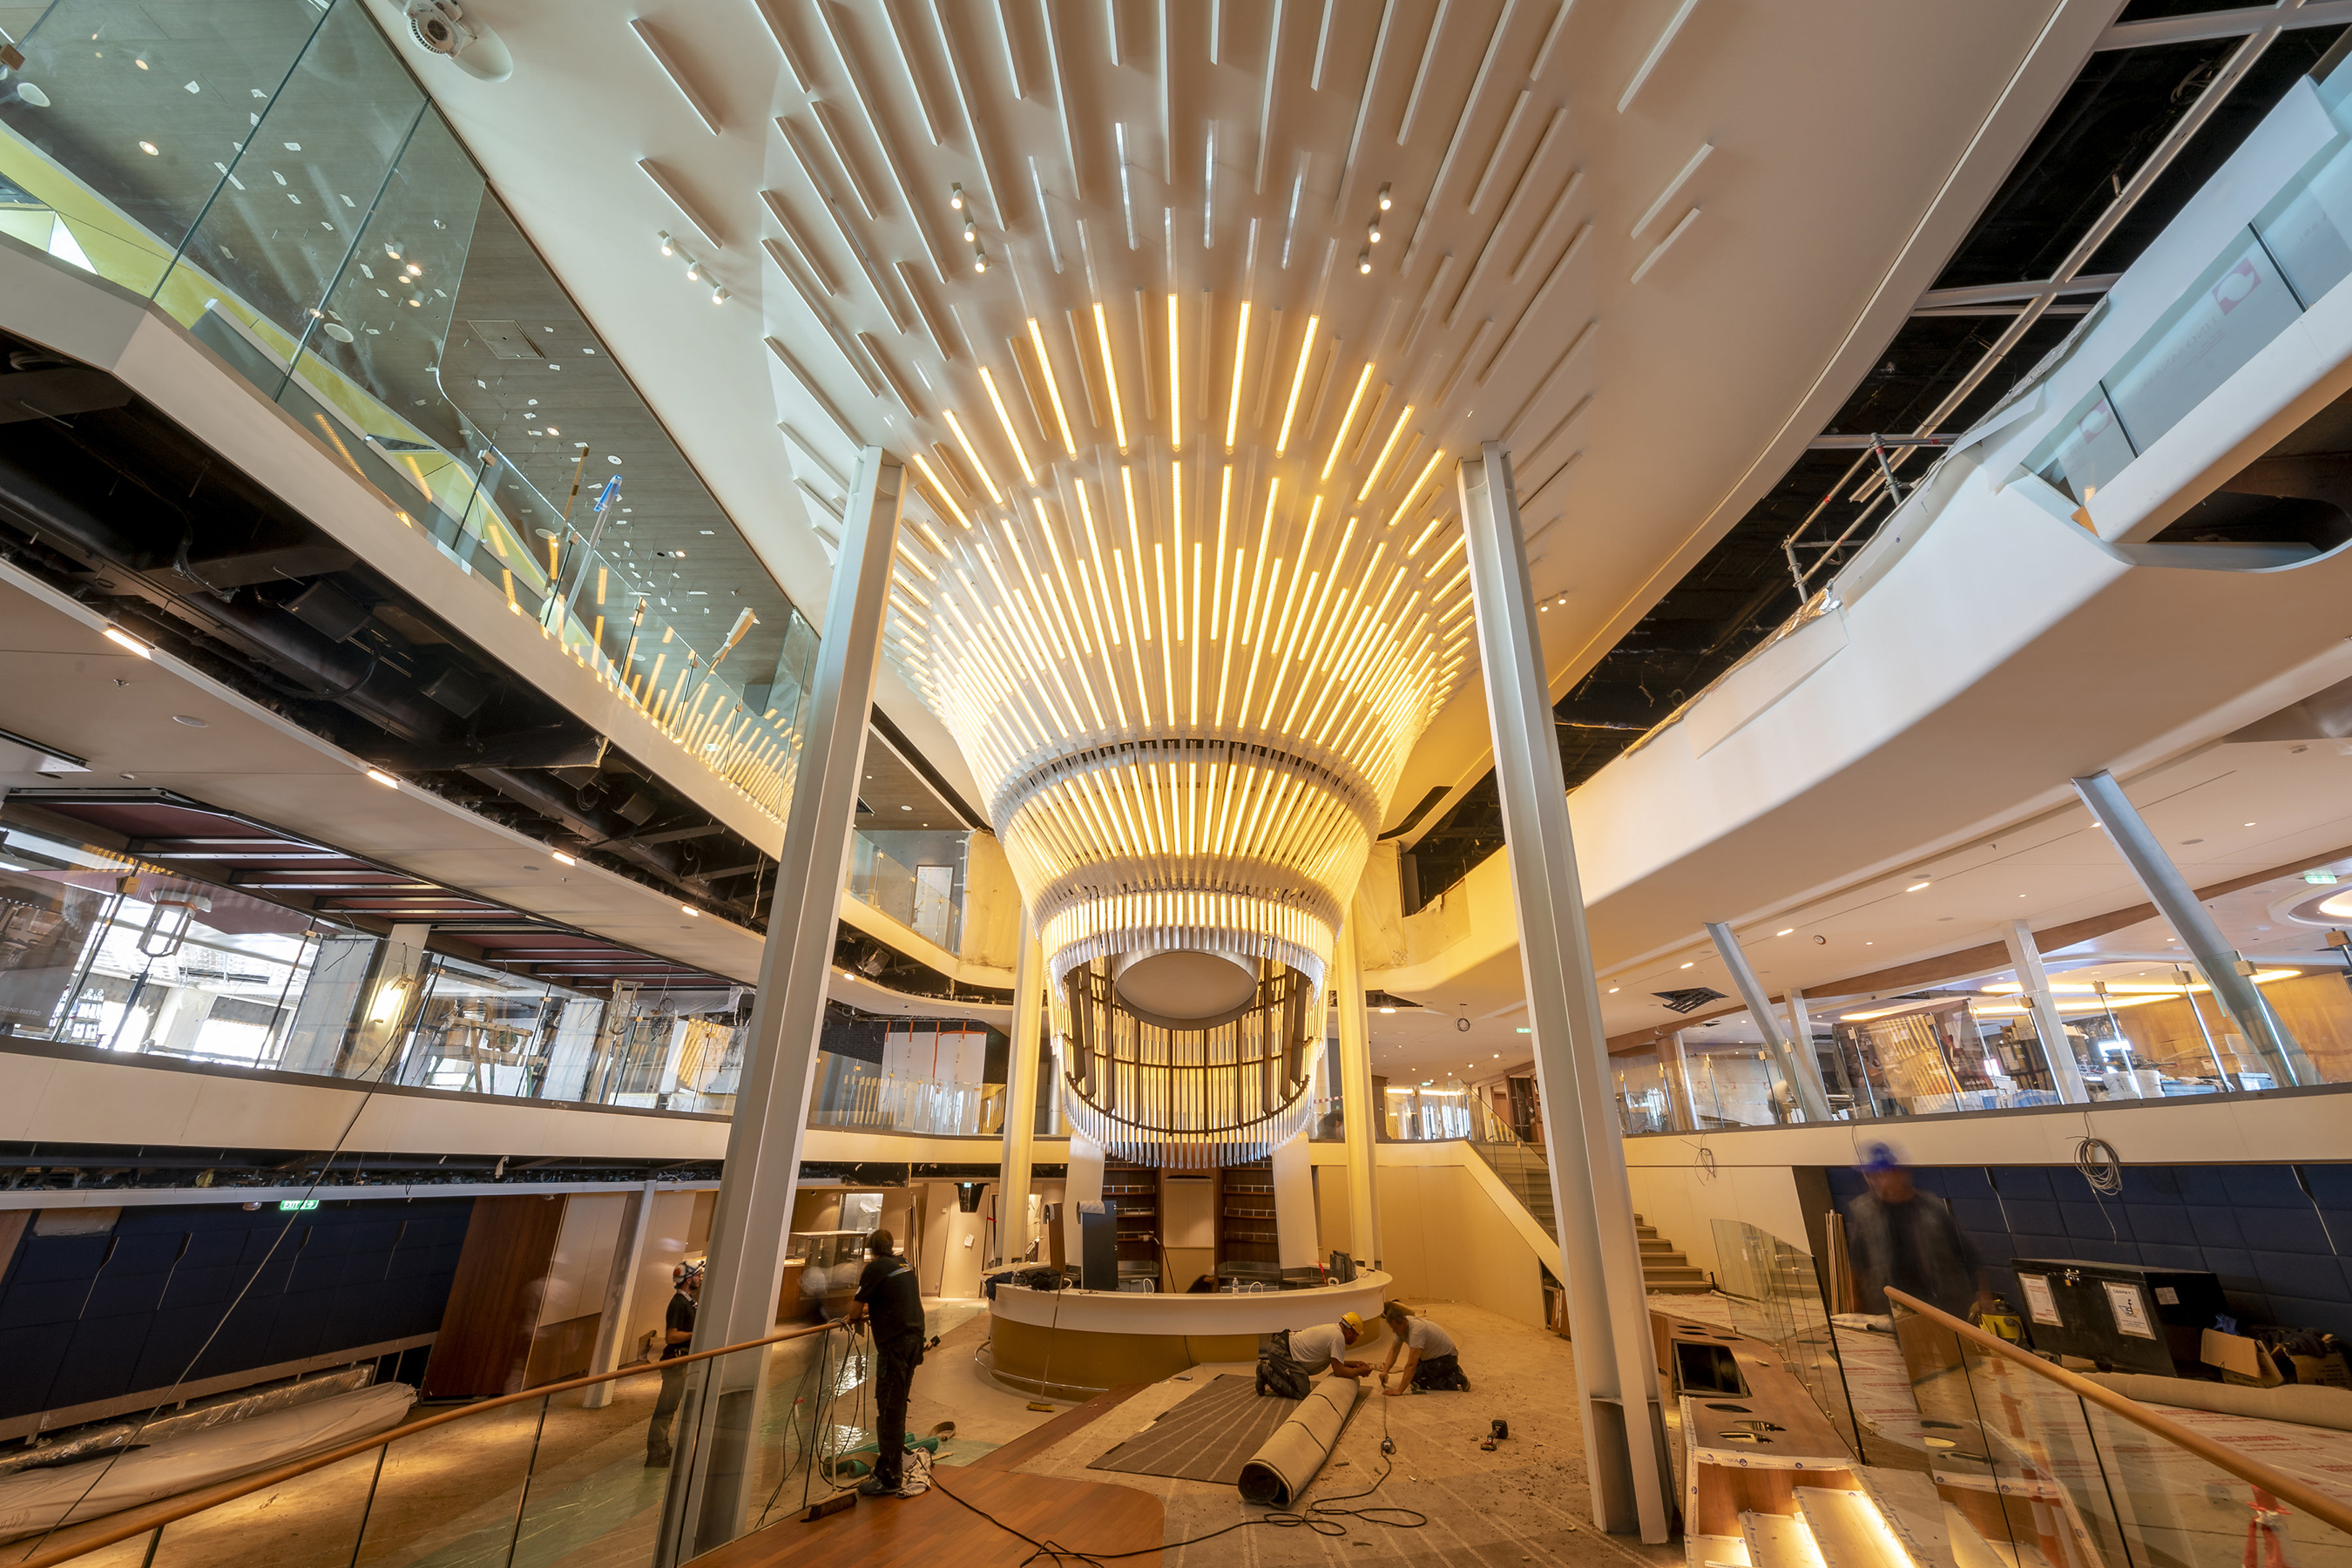 A sneak peek at The Grand Plaza, designed by visionaries Patrick Jouin and Sanjit Manku of Jouin Manku, on Celebrity Edge as of September 13, 2018.